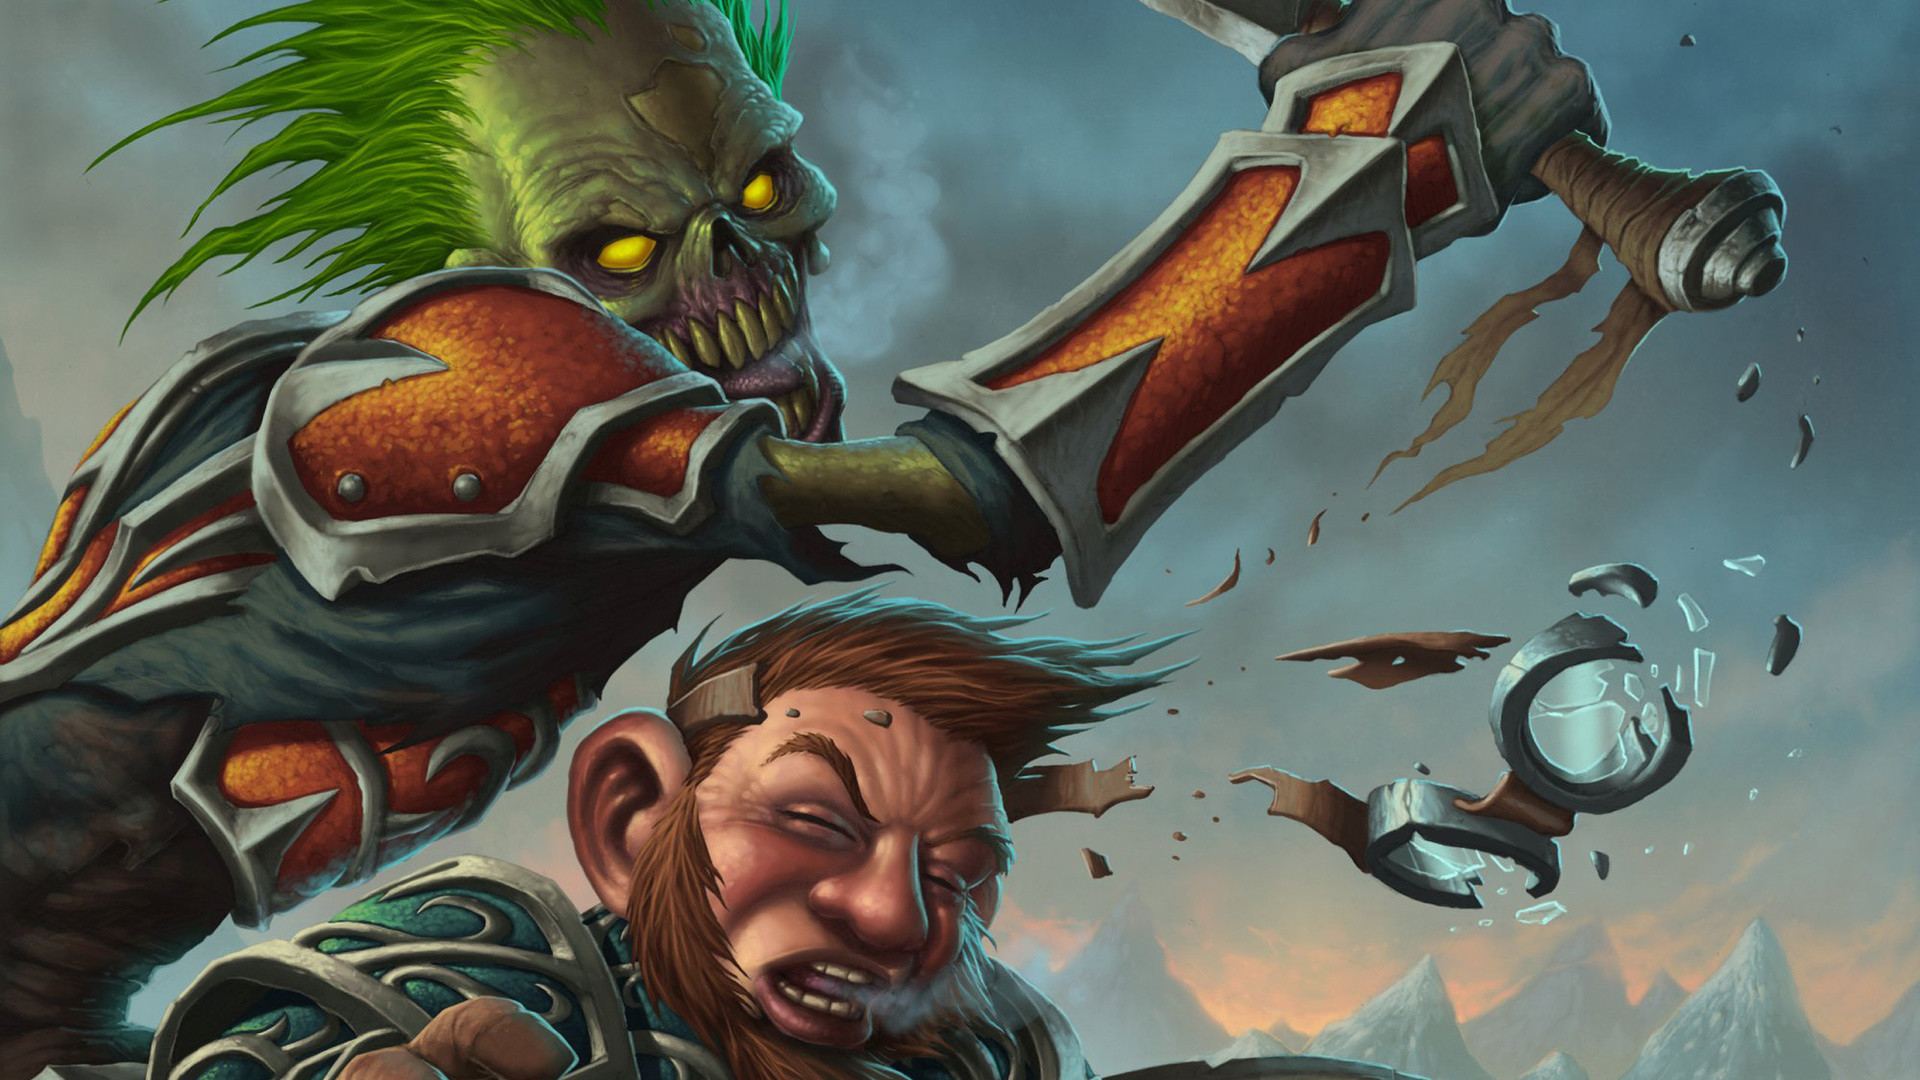 Res: 1920x1080, Killer, Blow, Wow, Fight, Fight, Undead, Dwarf, World Of